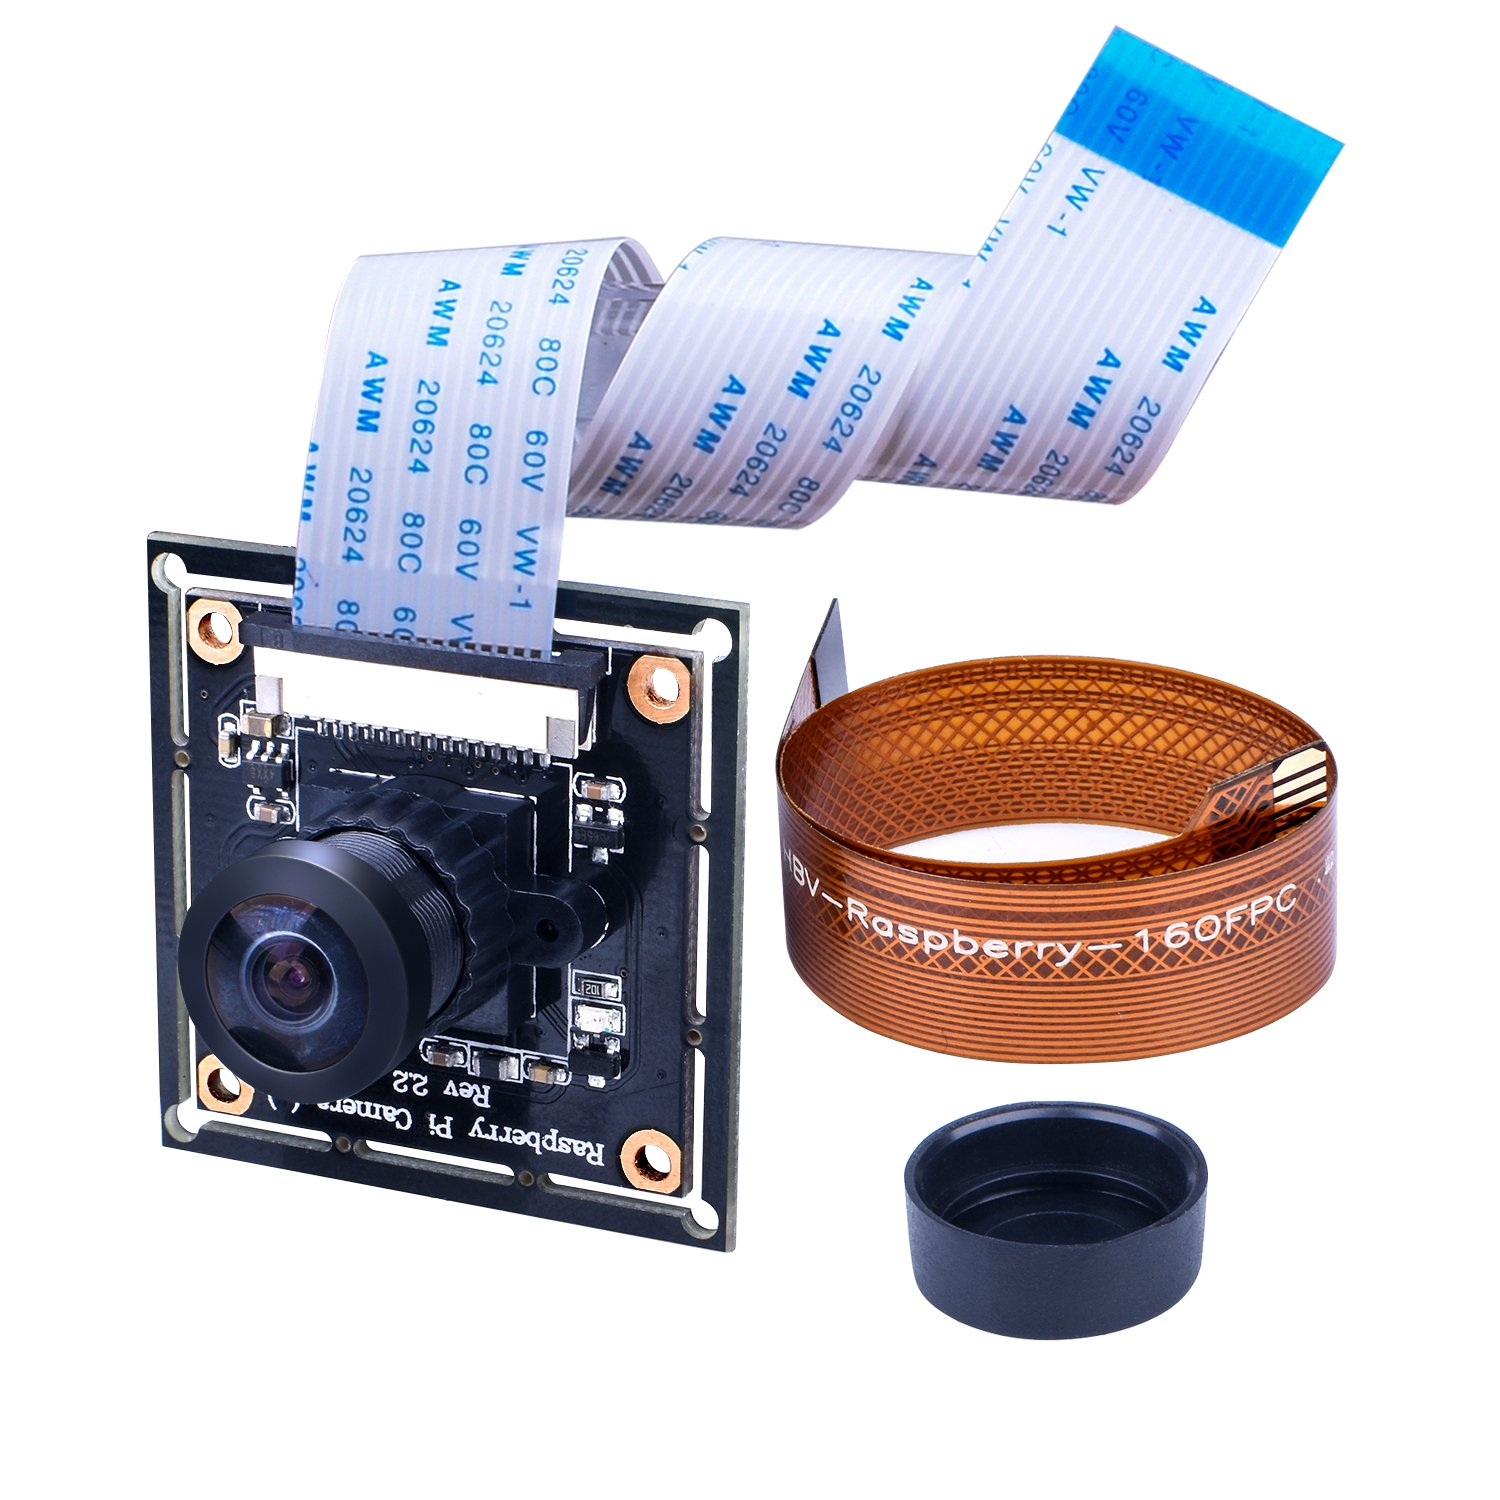 For Raspberry PI Wide Angle 160° Fisheye Lens HD Camera Module, Longruner 5MP RPI Camera Adjustable-Focus Module Drone Webcam with 16 Pin FPC Cable For PI 3 B Model & 2 B B+ and RPi Zero Ribbon Cable 15cm for Zero Zero W